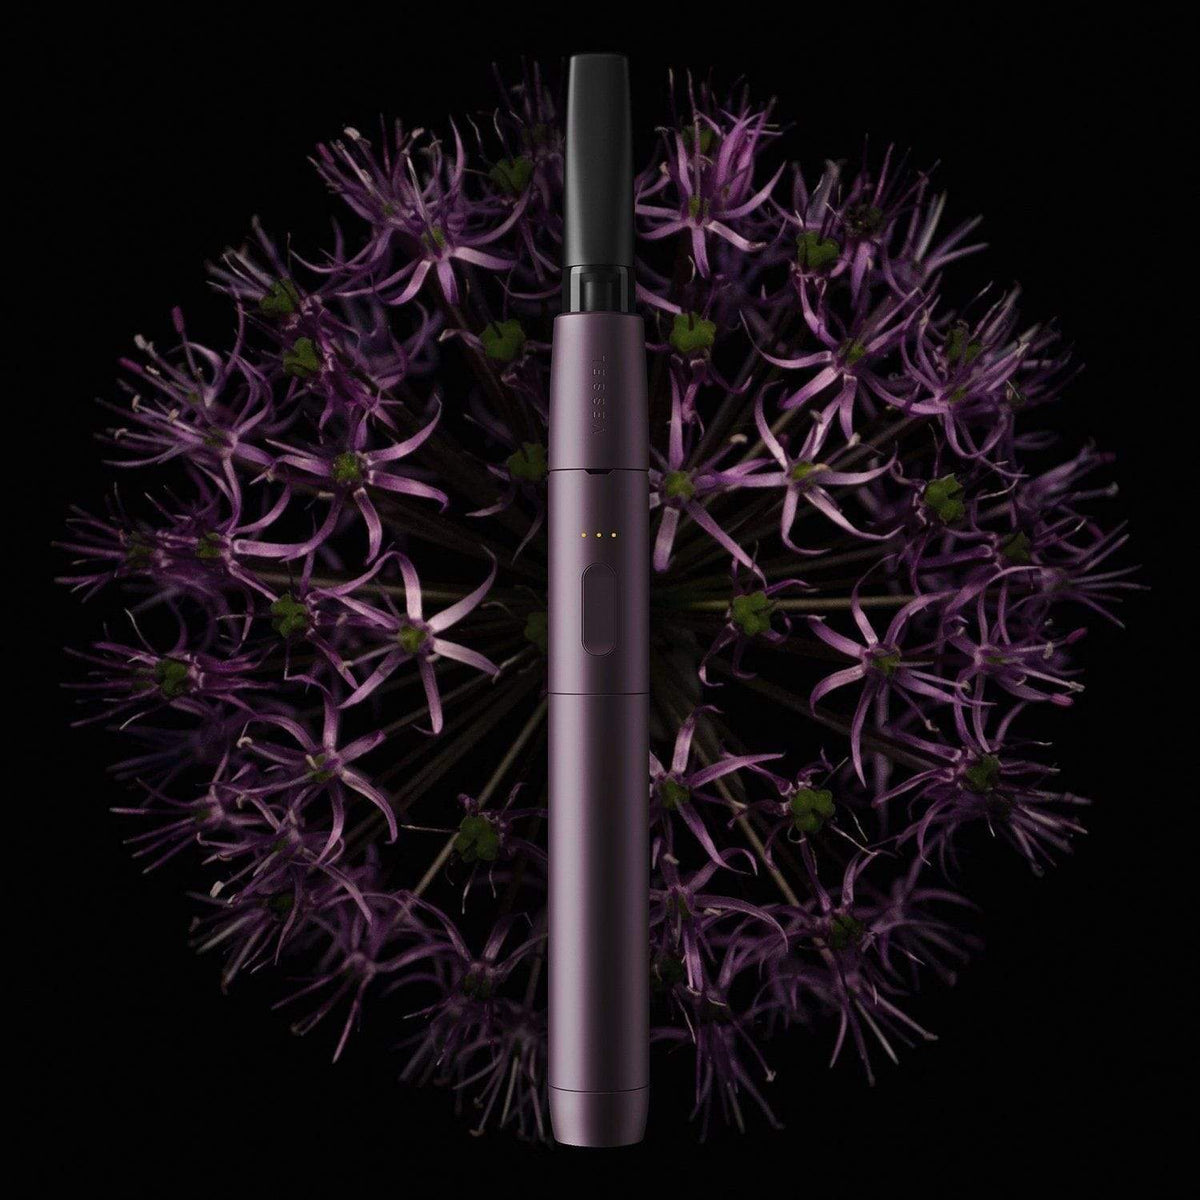 Purple Vape Pen Battery with Flowers